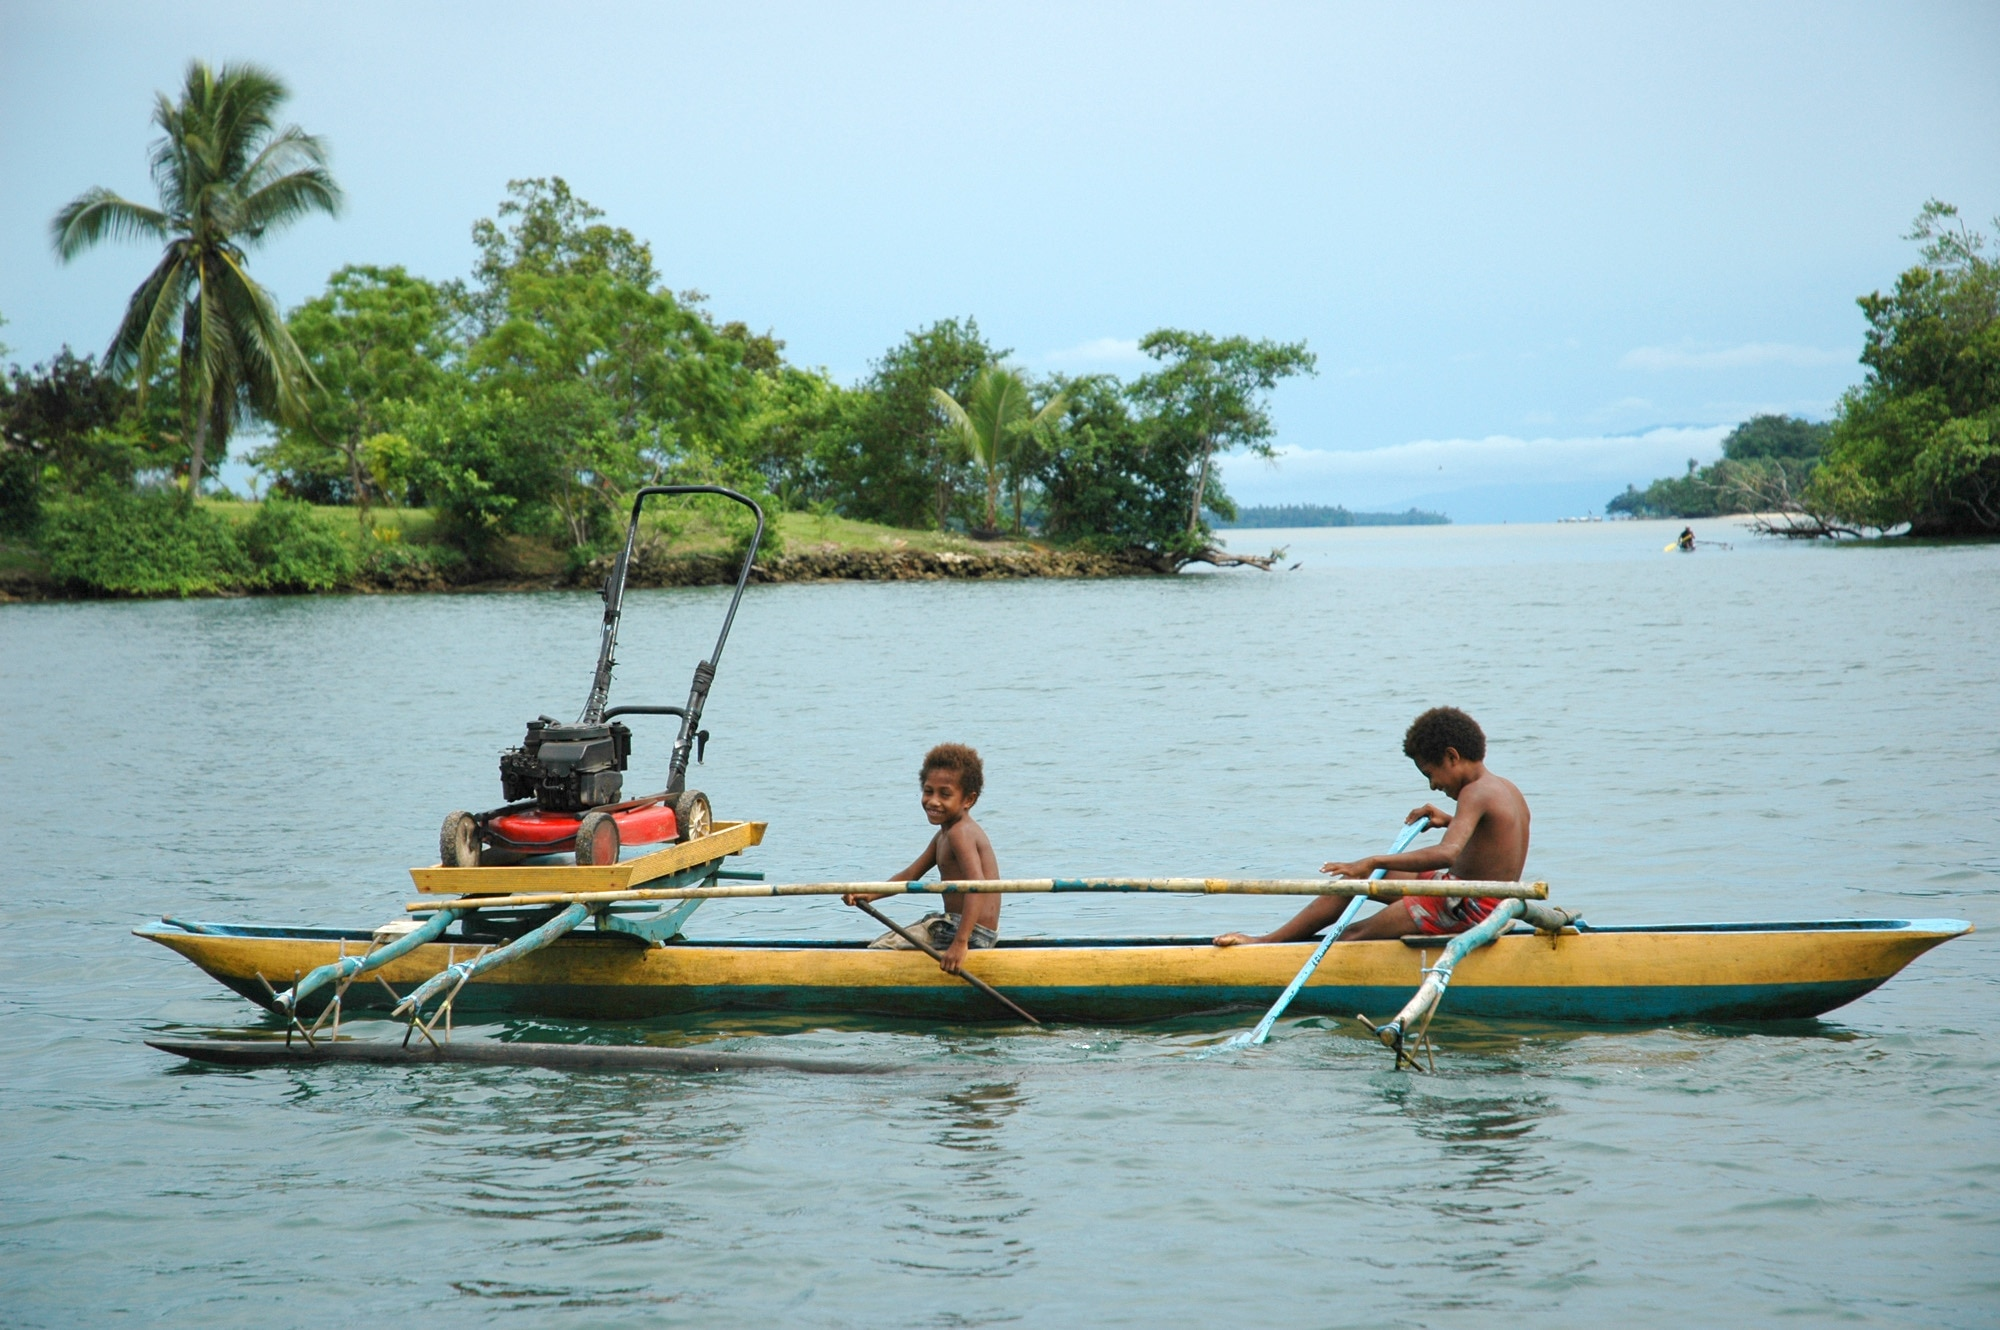 Papua New Guinea: Two boys in an outrigger canoe ferry a lawnmower across a bay near Madang on Papua New Guinea's north coast.